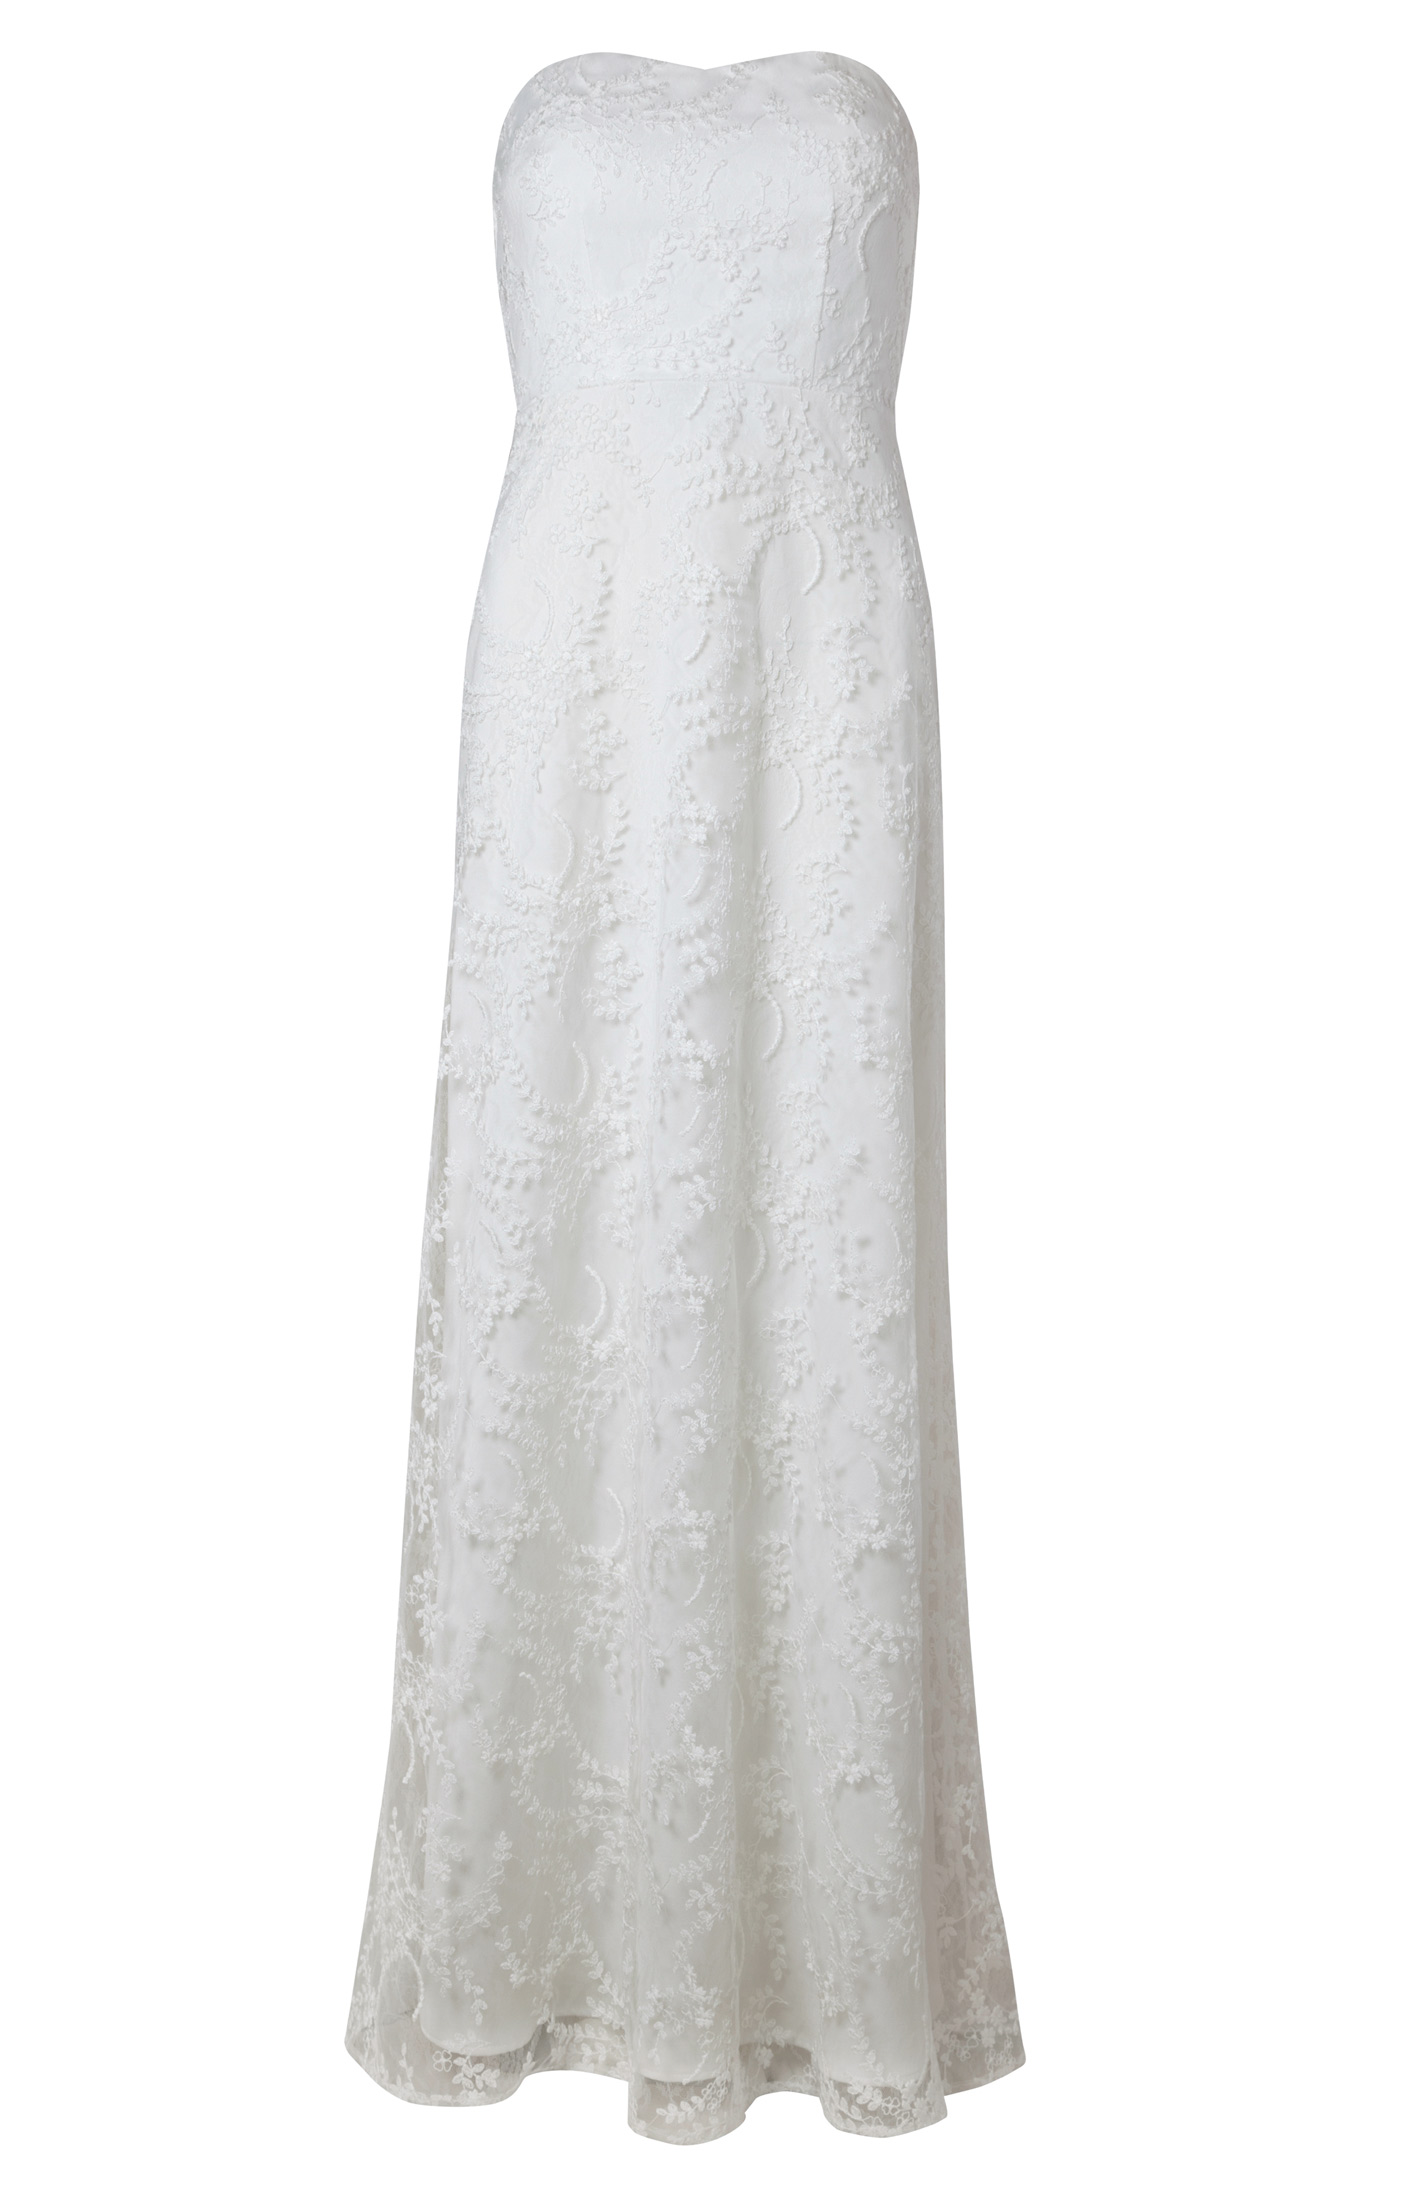 c1806d3dafb72 Flora Wedding Gown Ivory - Evening Dresses, Occasion Wear and Wedding  Dresses by Alie Street.